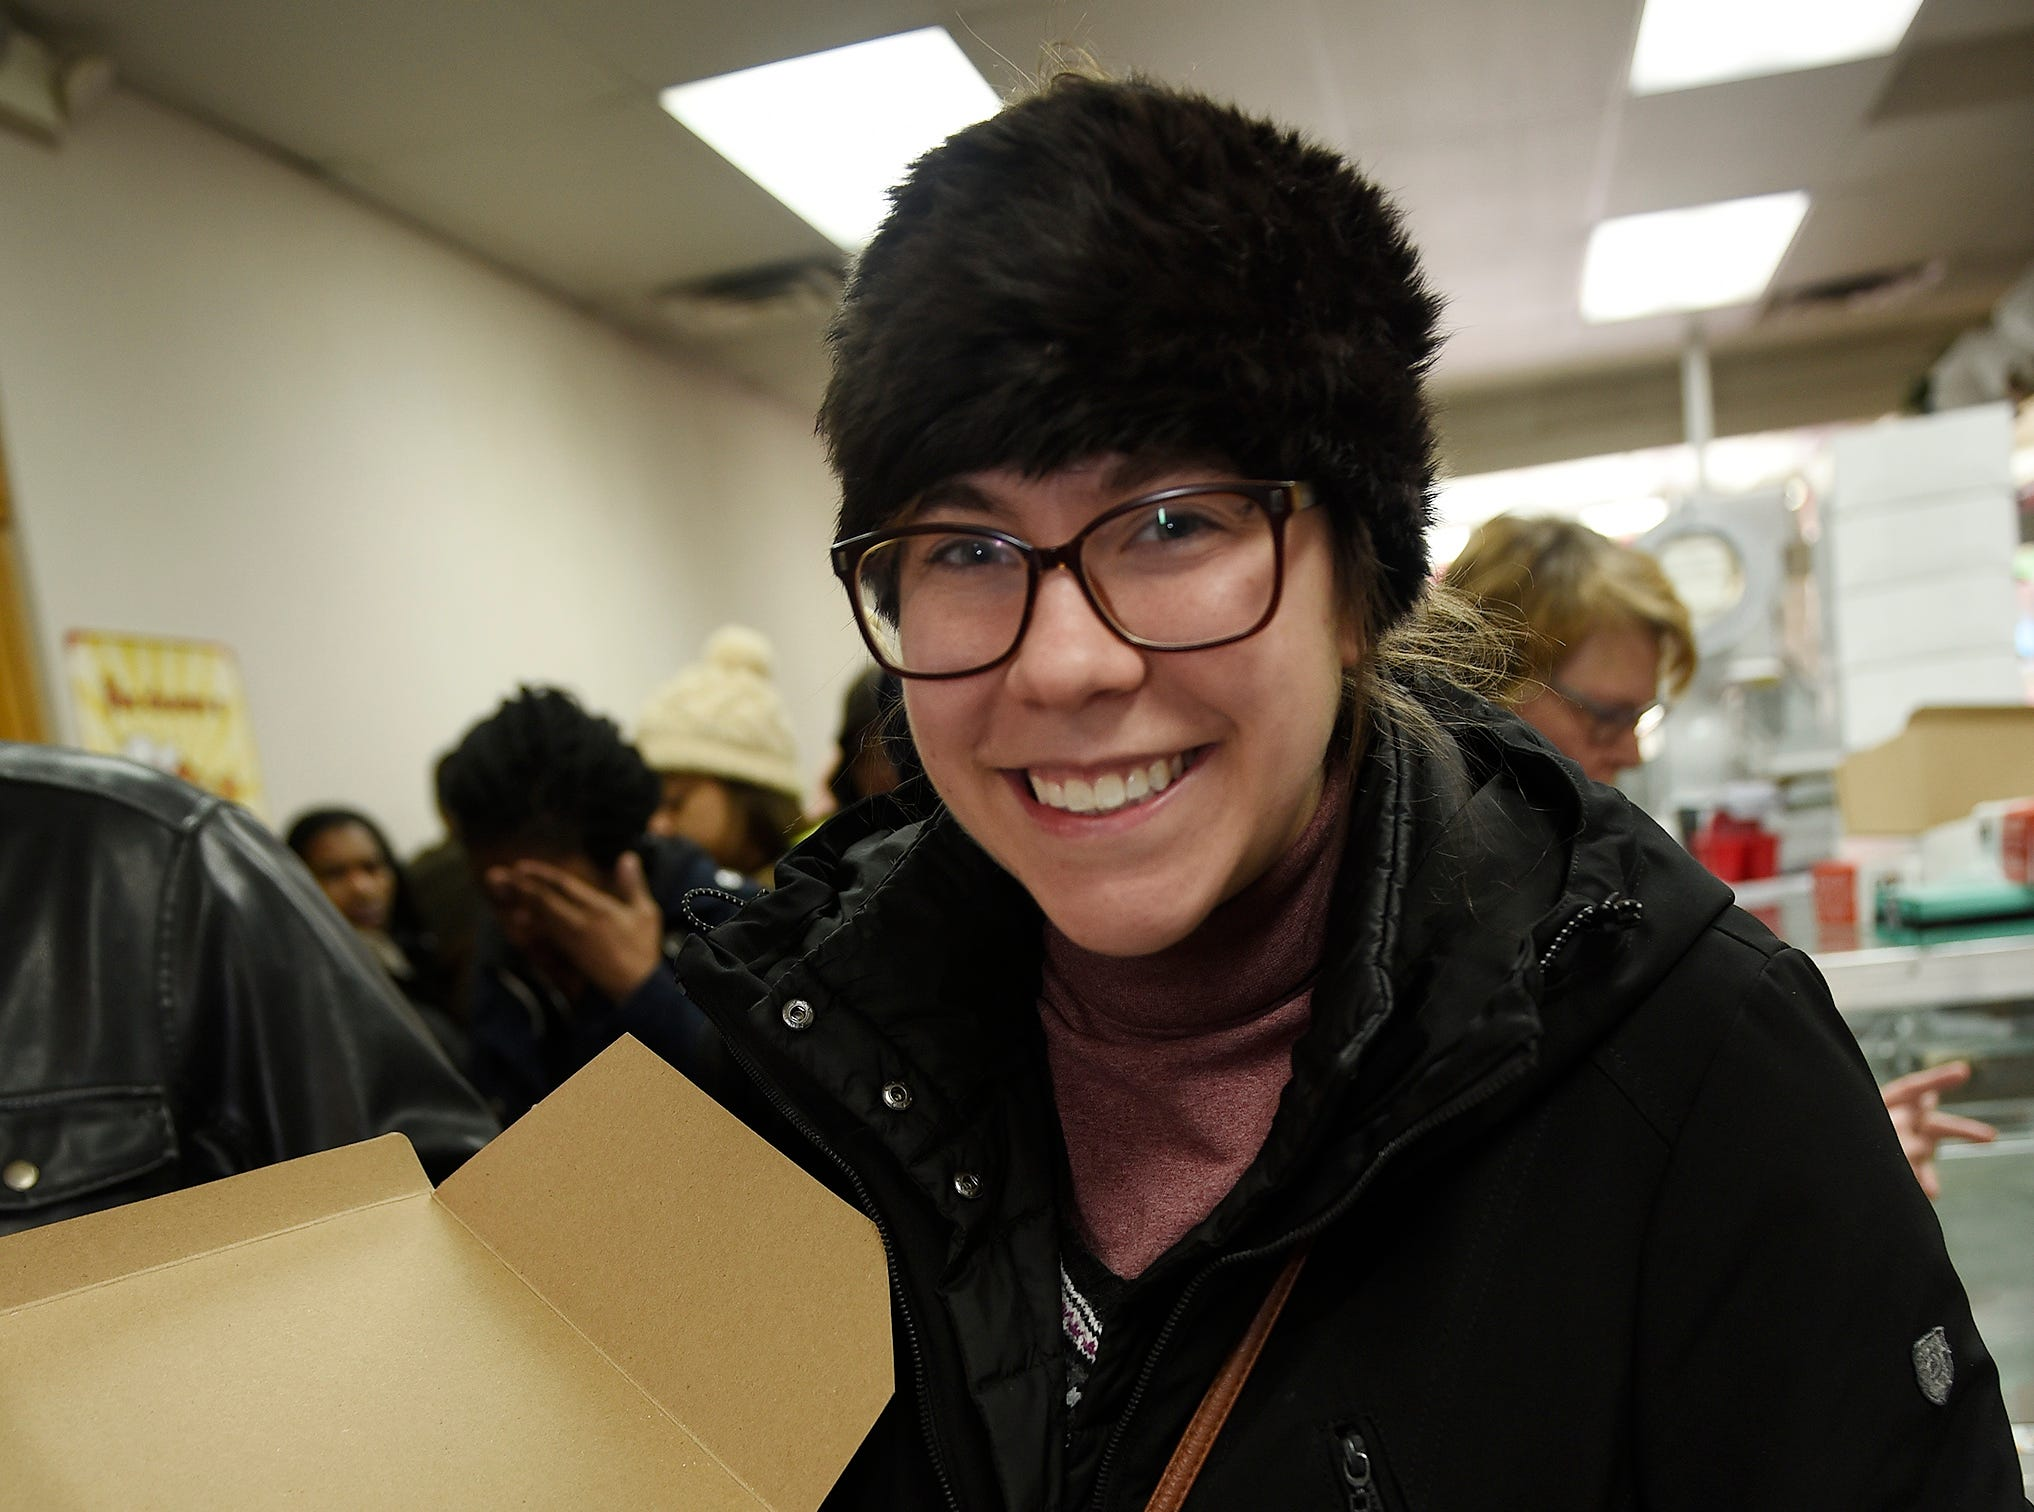 Erin Harris, 26, of Hamtramck displays a dozen of paczki that she will be taking to work for her colleagues.